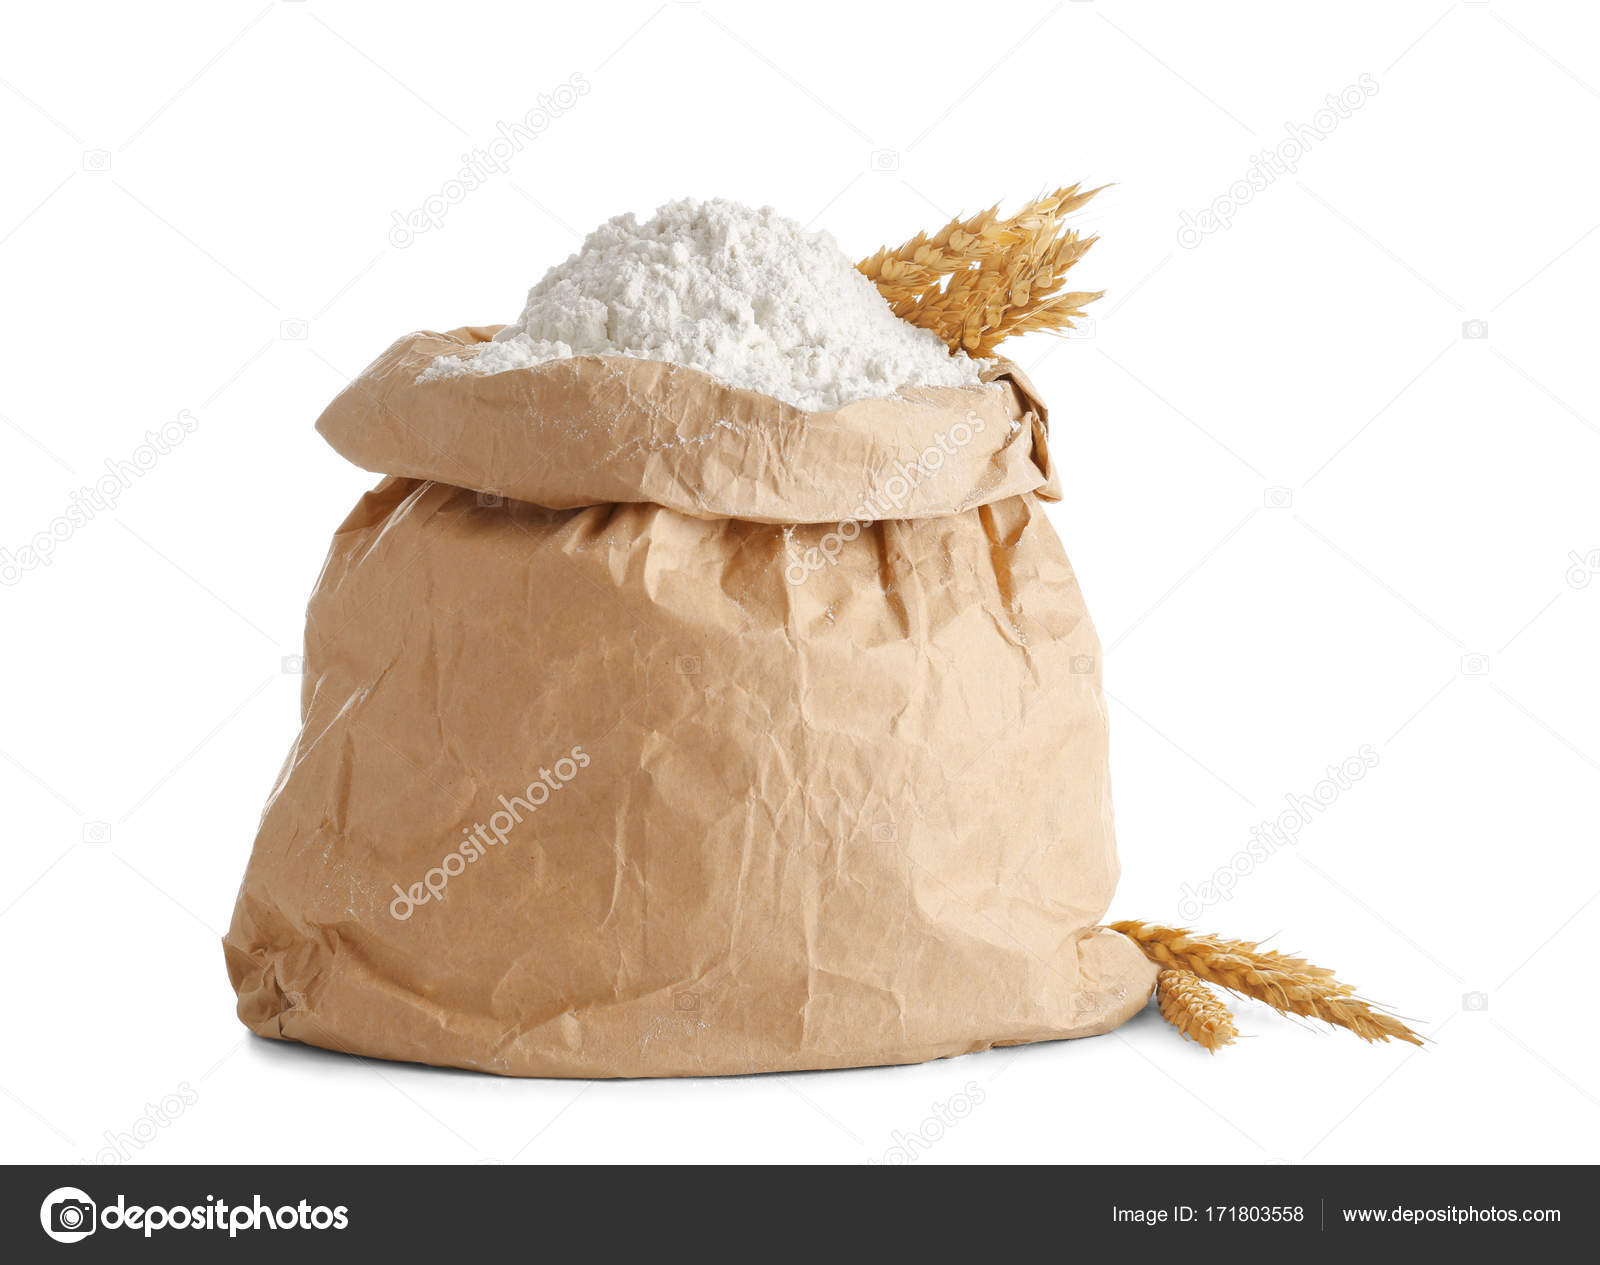 Paper Bag Of Flour Stock Photo C Belchonock 171803558